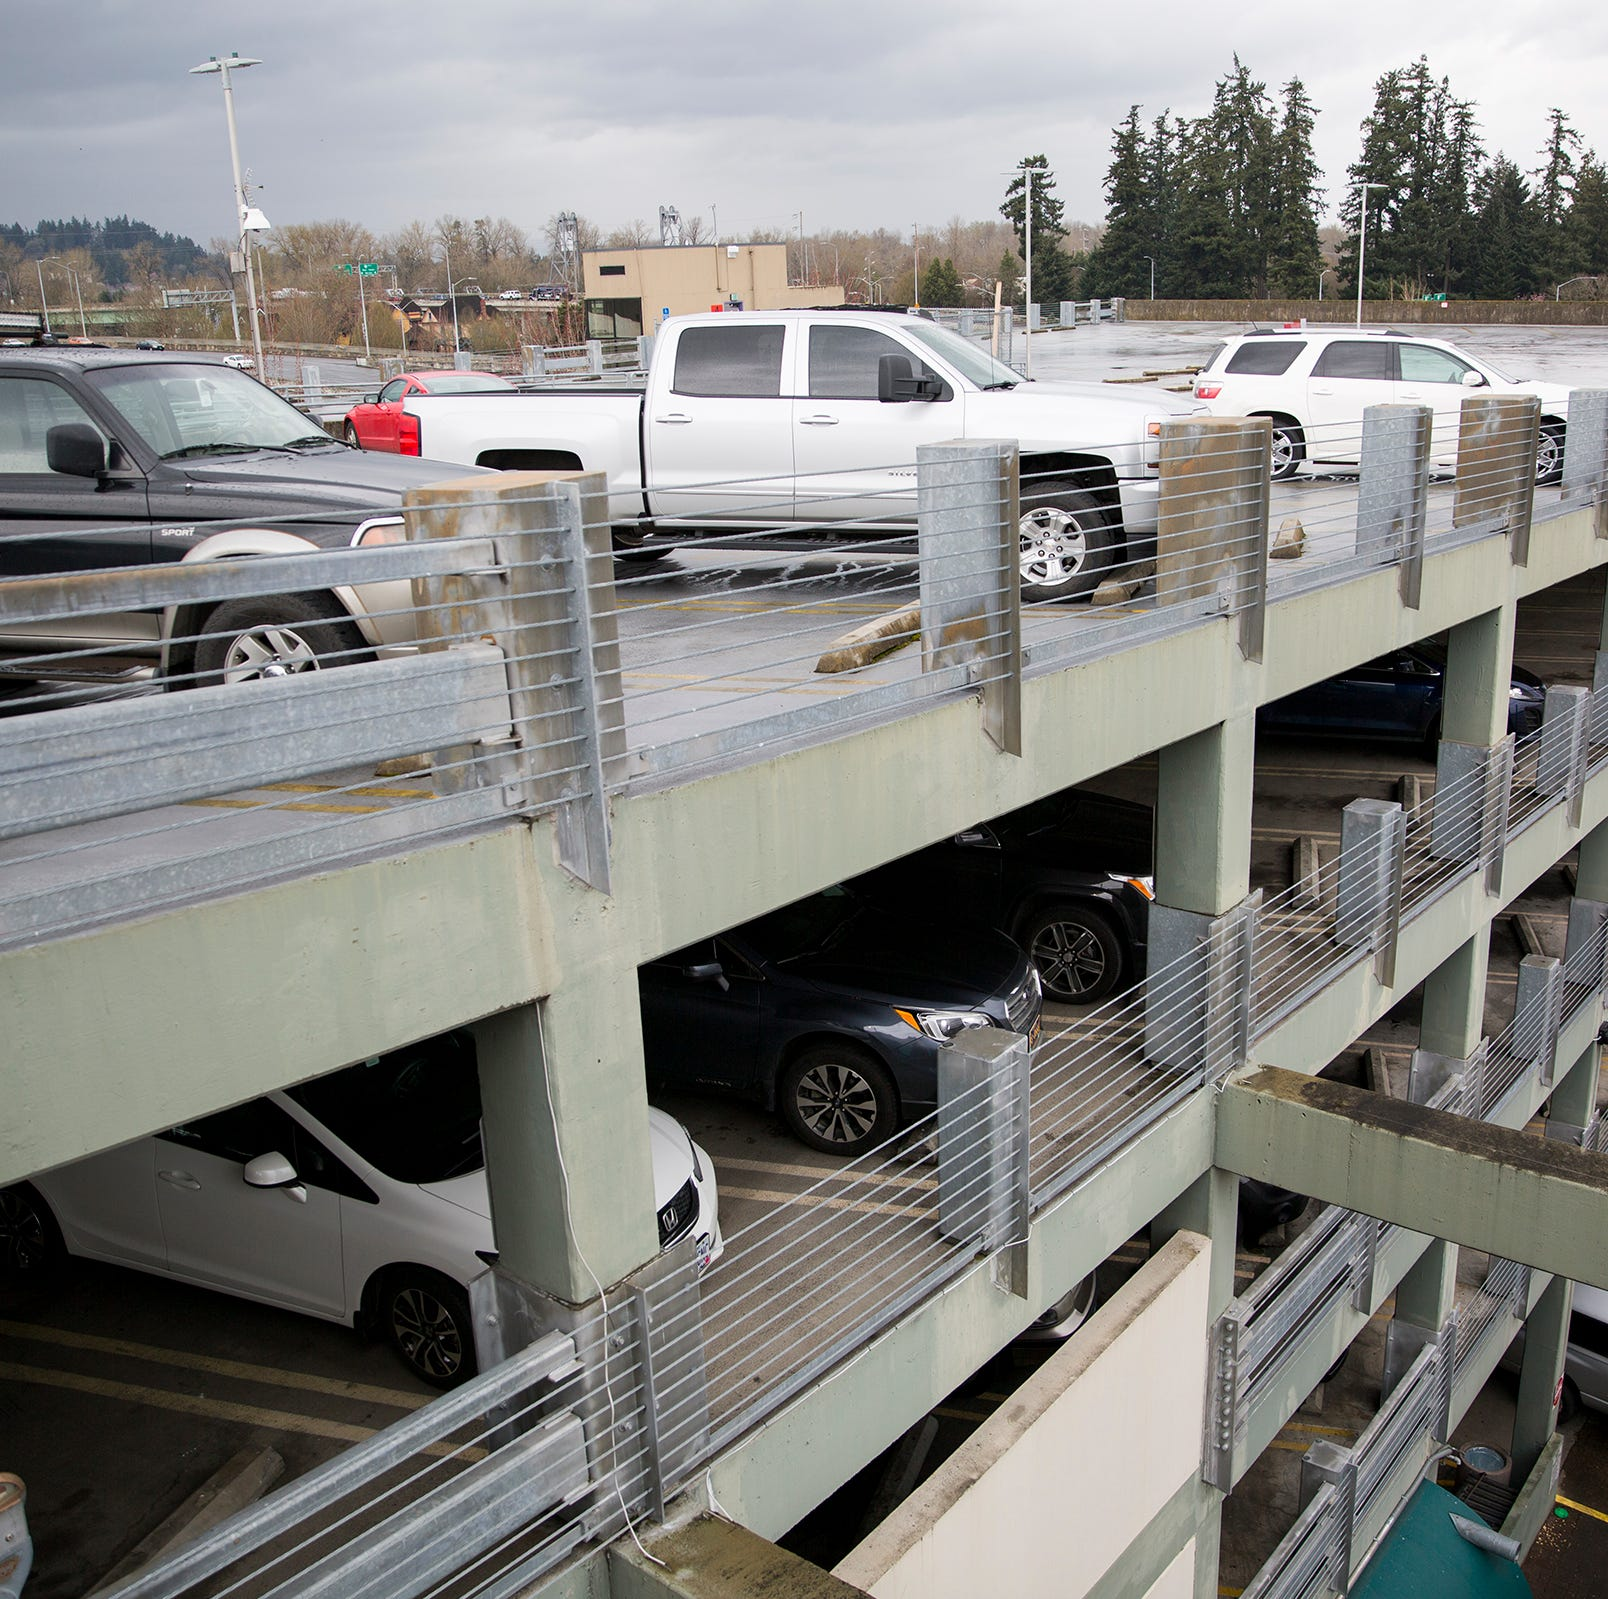 Salem City Council considers charging downtown residents to use parking structures